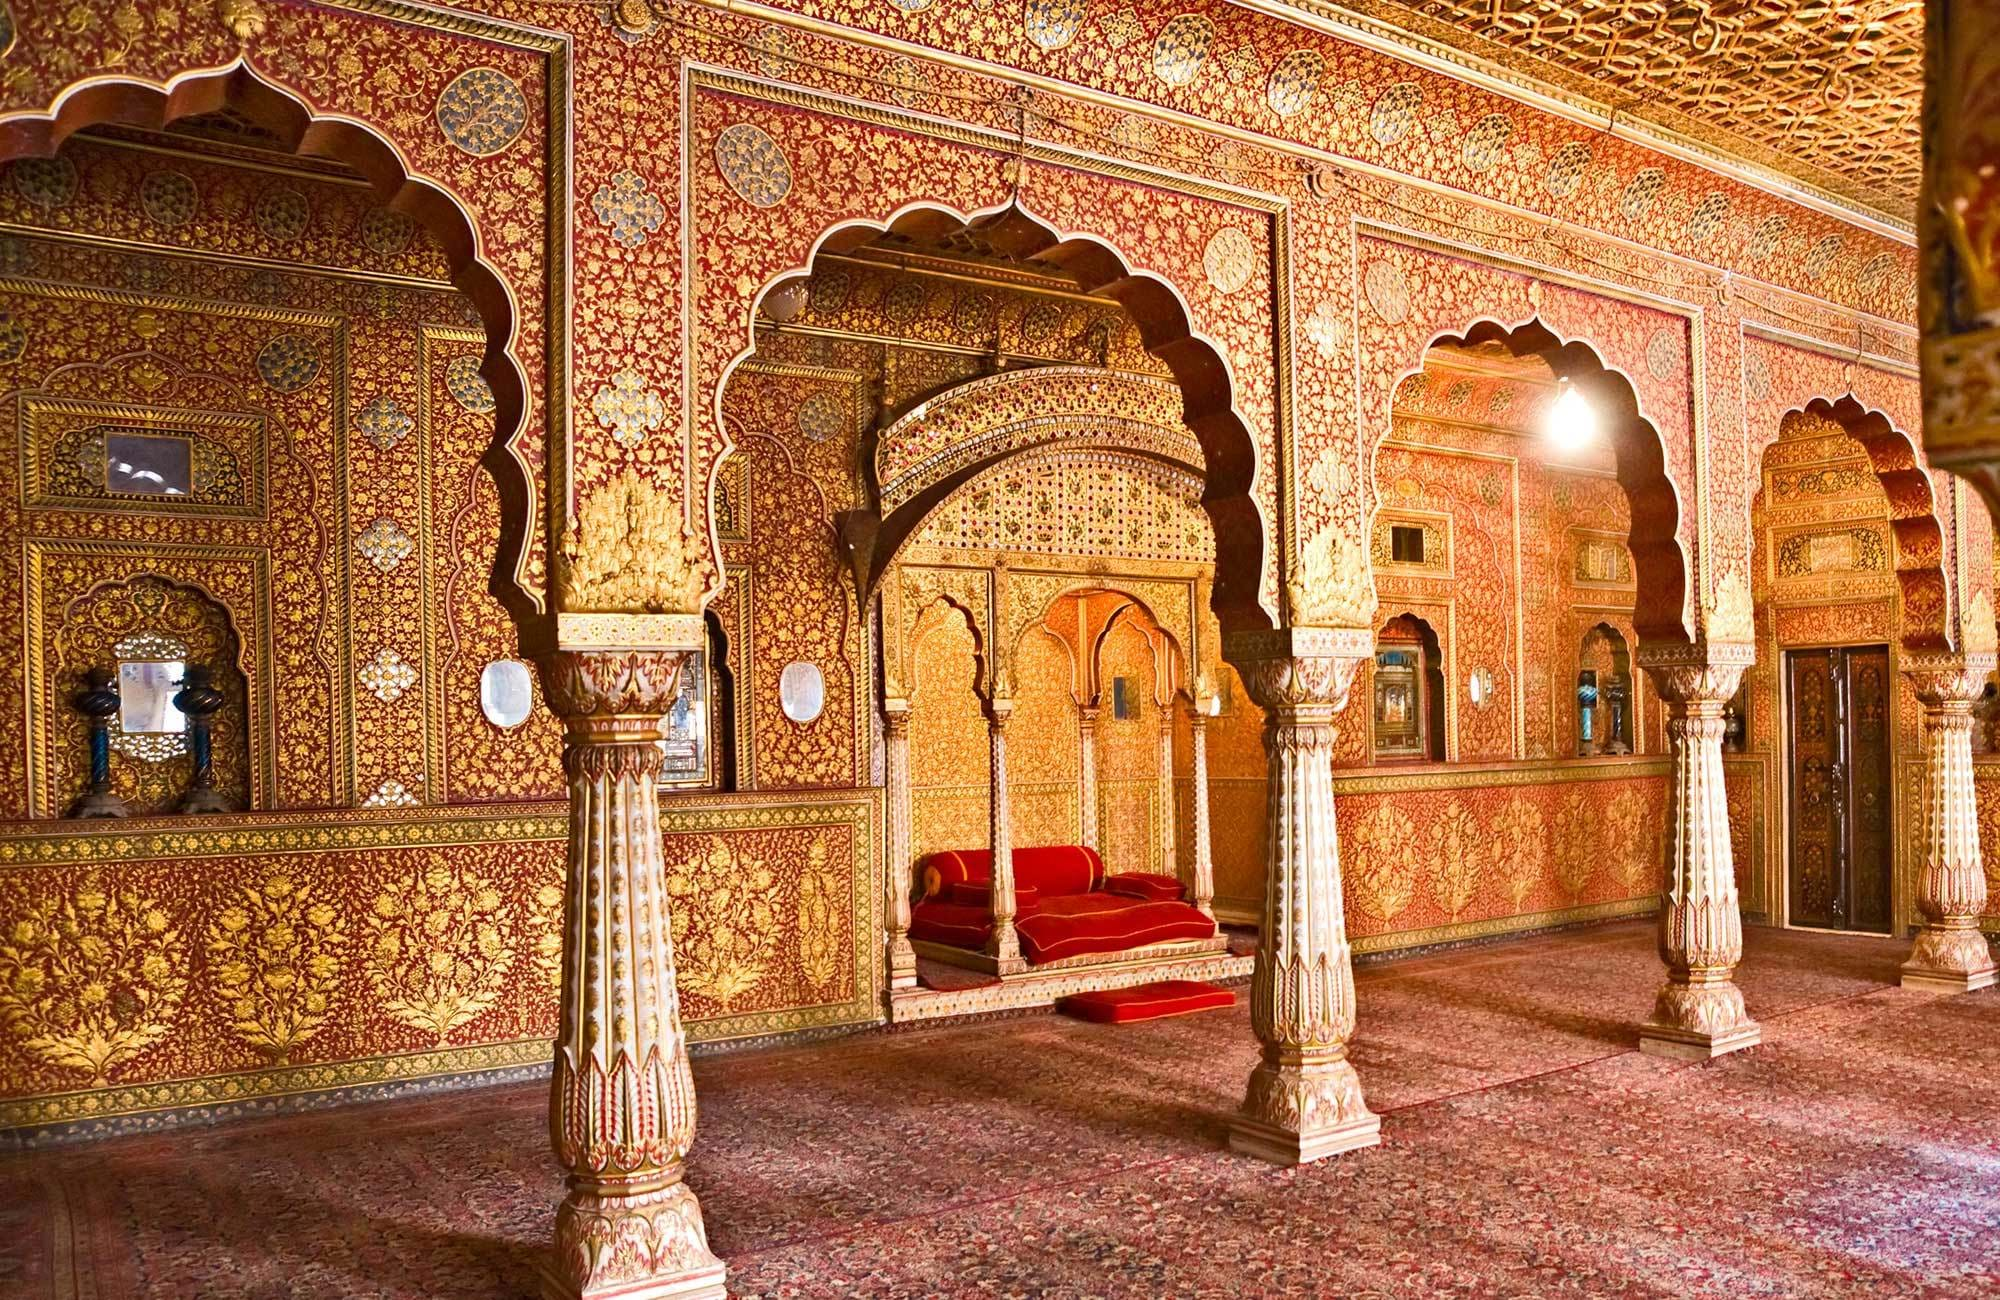 india-rajasthan-ornate-palce-interior